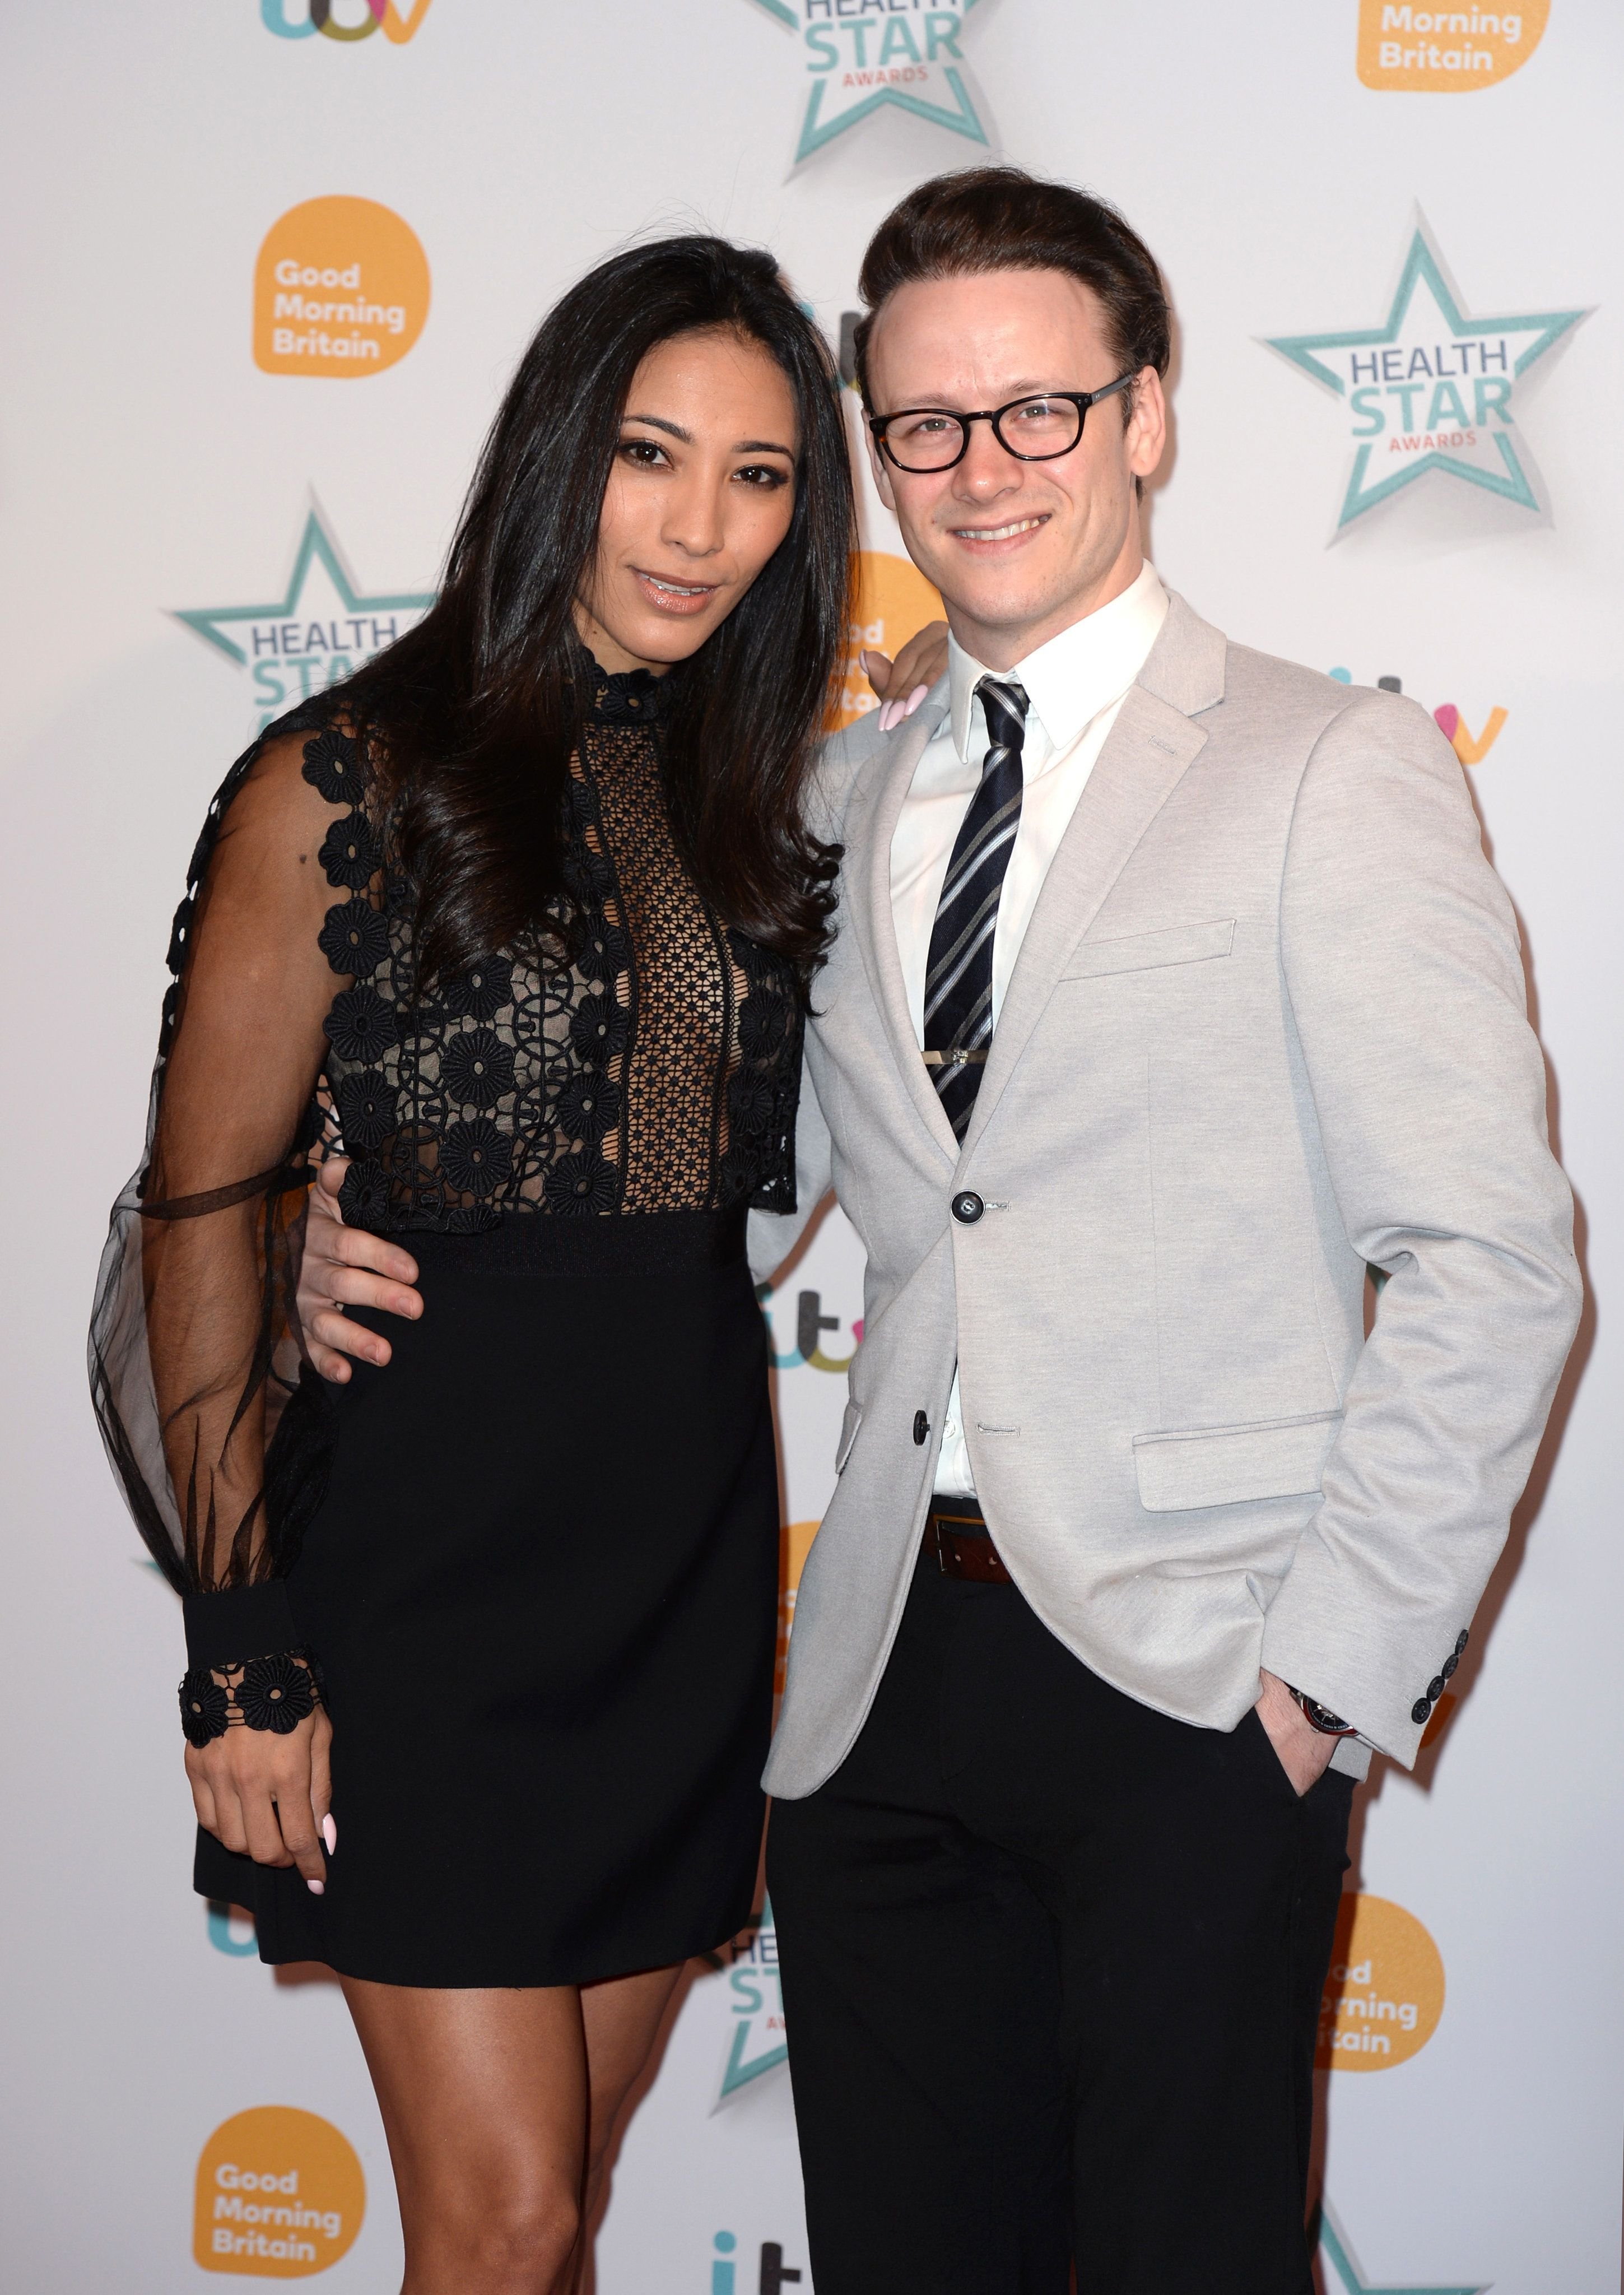 Strictly's Karen Clifton Admits She's 'Working' On Marriage To Husband Kevin, After He Apologises To Her On